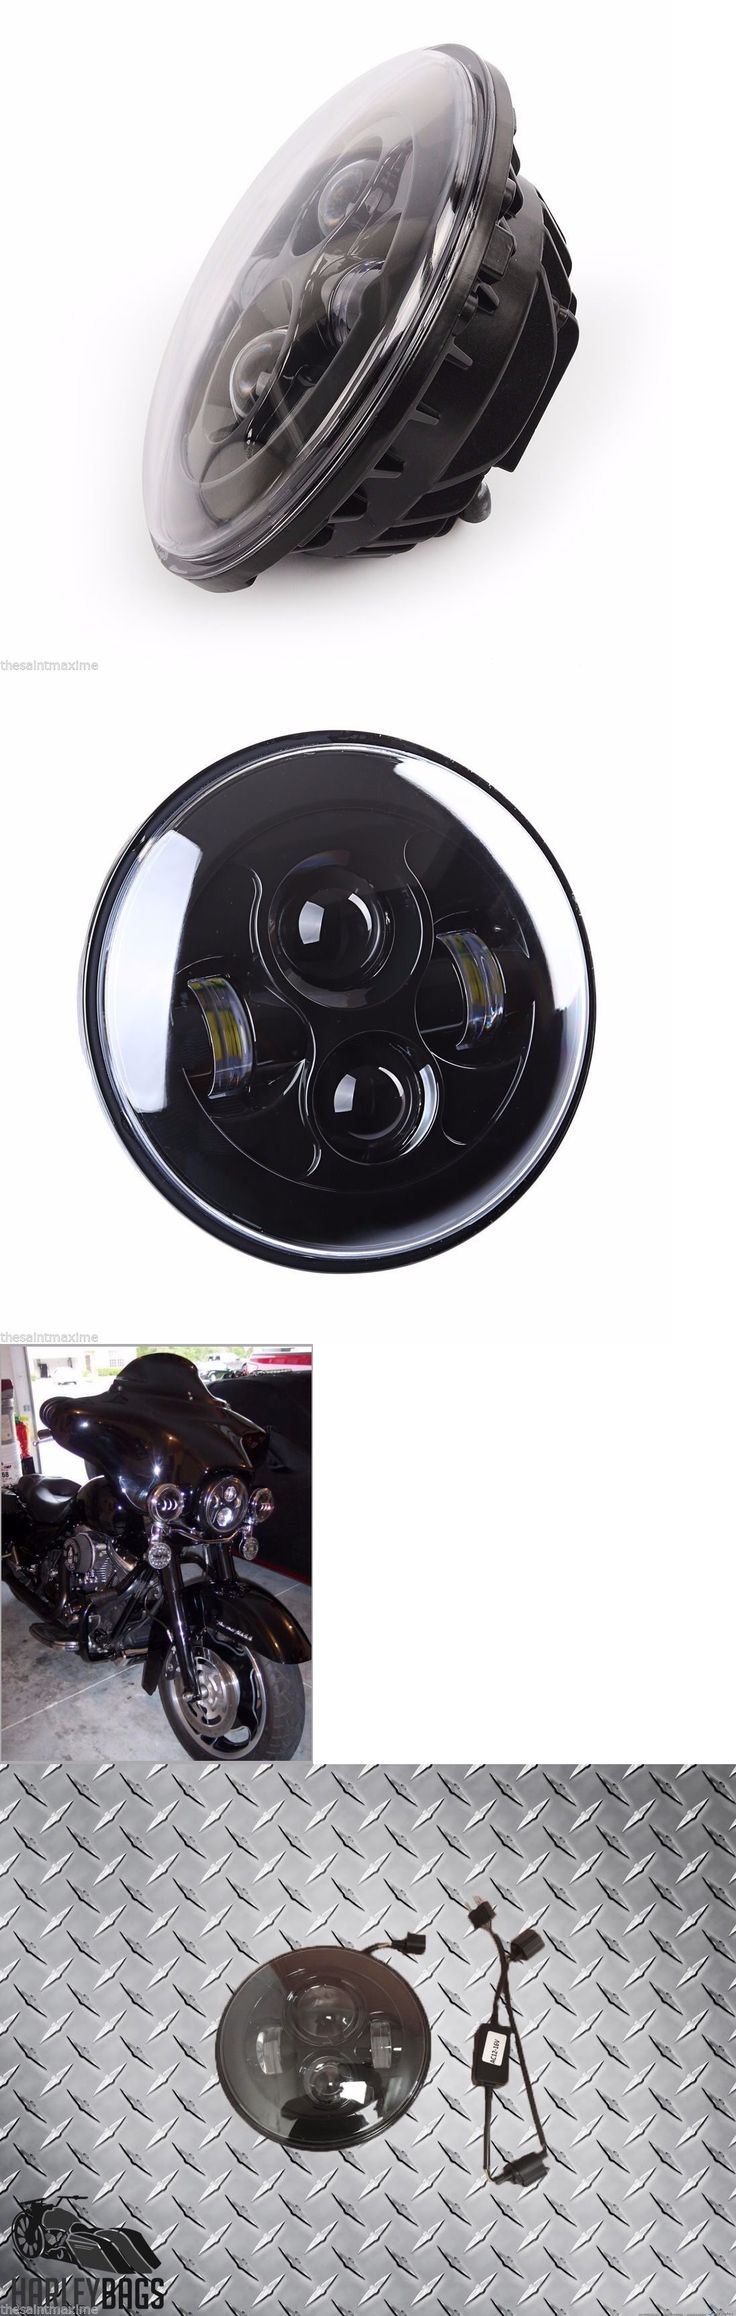 motorcycle parts: Harley Davidson Motorcycle Daymaker Led Bright Headlight 7 Light Bulb Black BUY IT NOW ONLY: $79.59